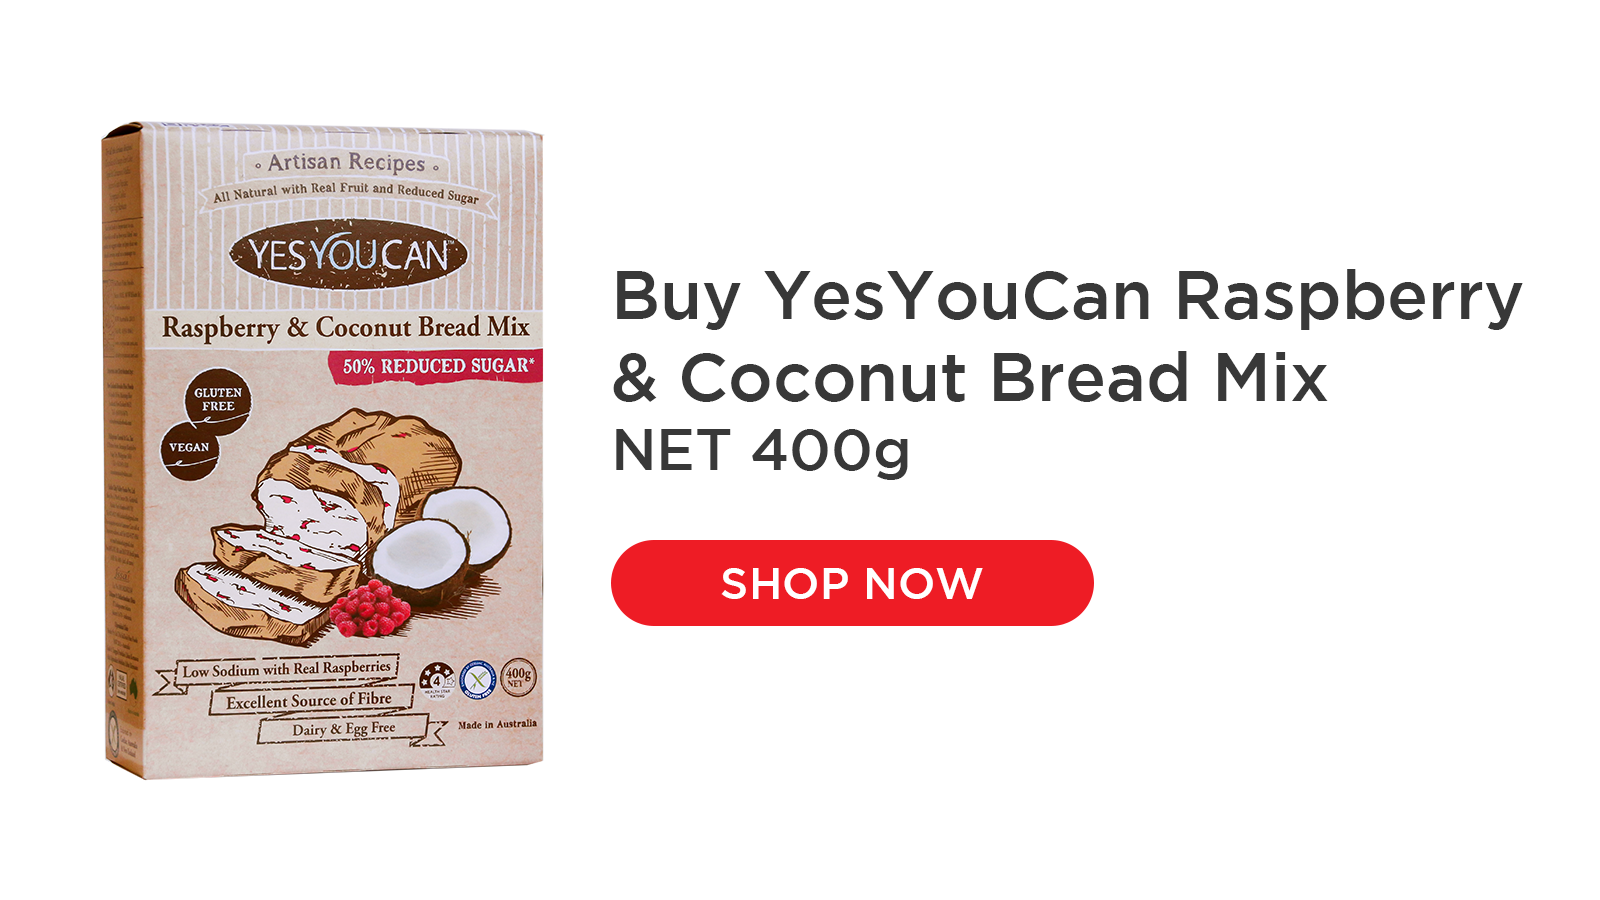 https://www.yesyoucan.net.au/collections/all-products/products/raspberry-coconut-bread